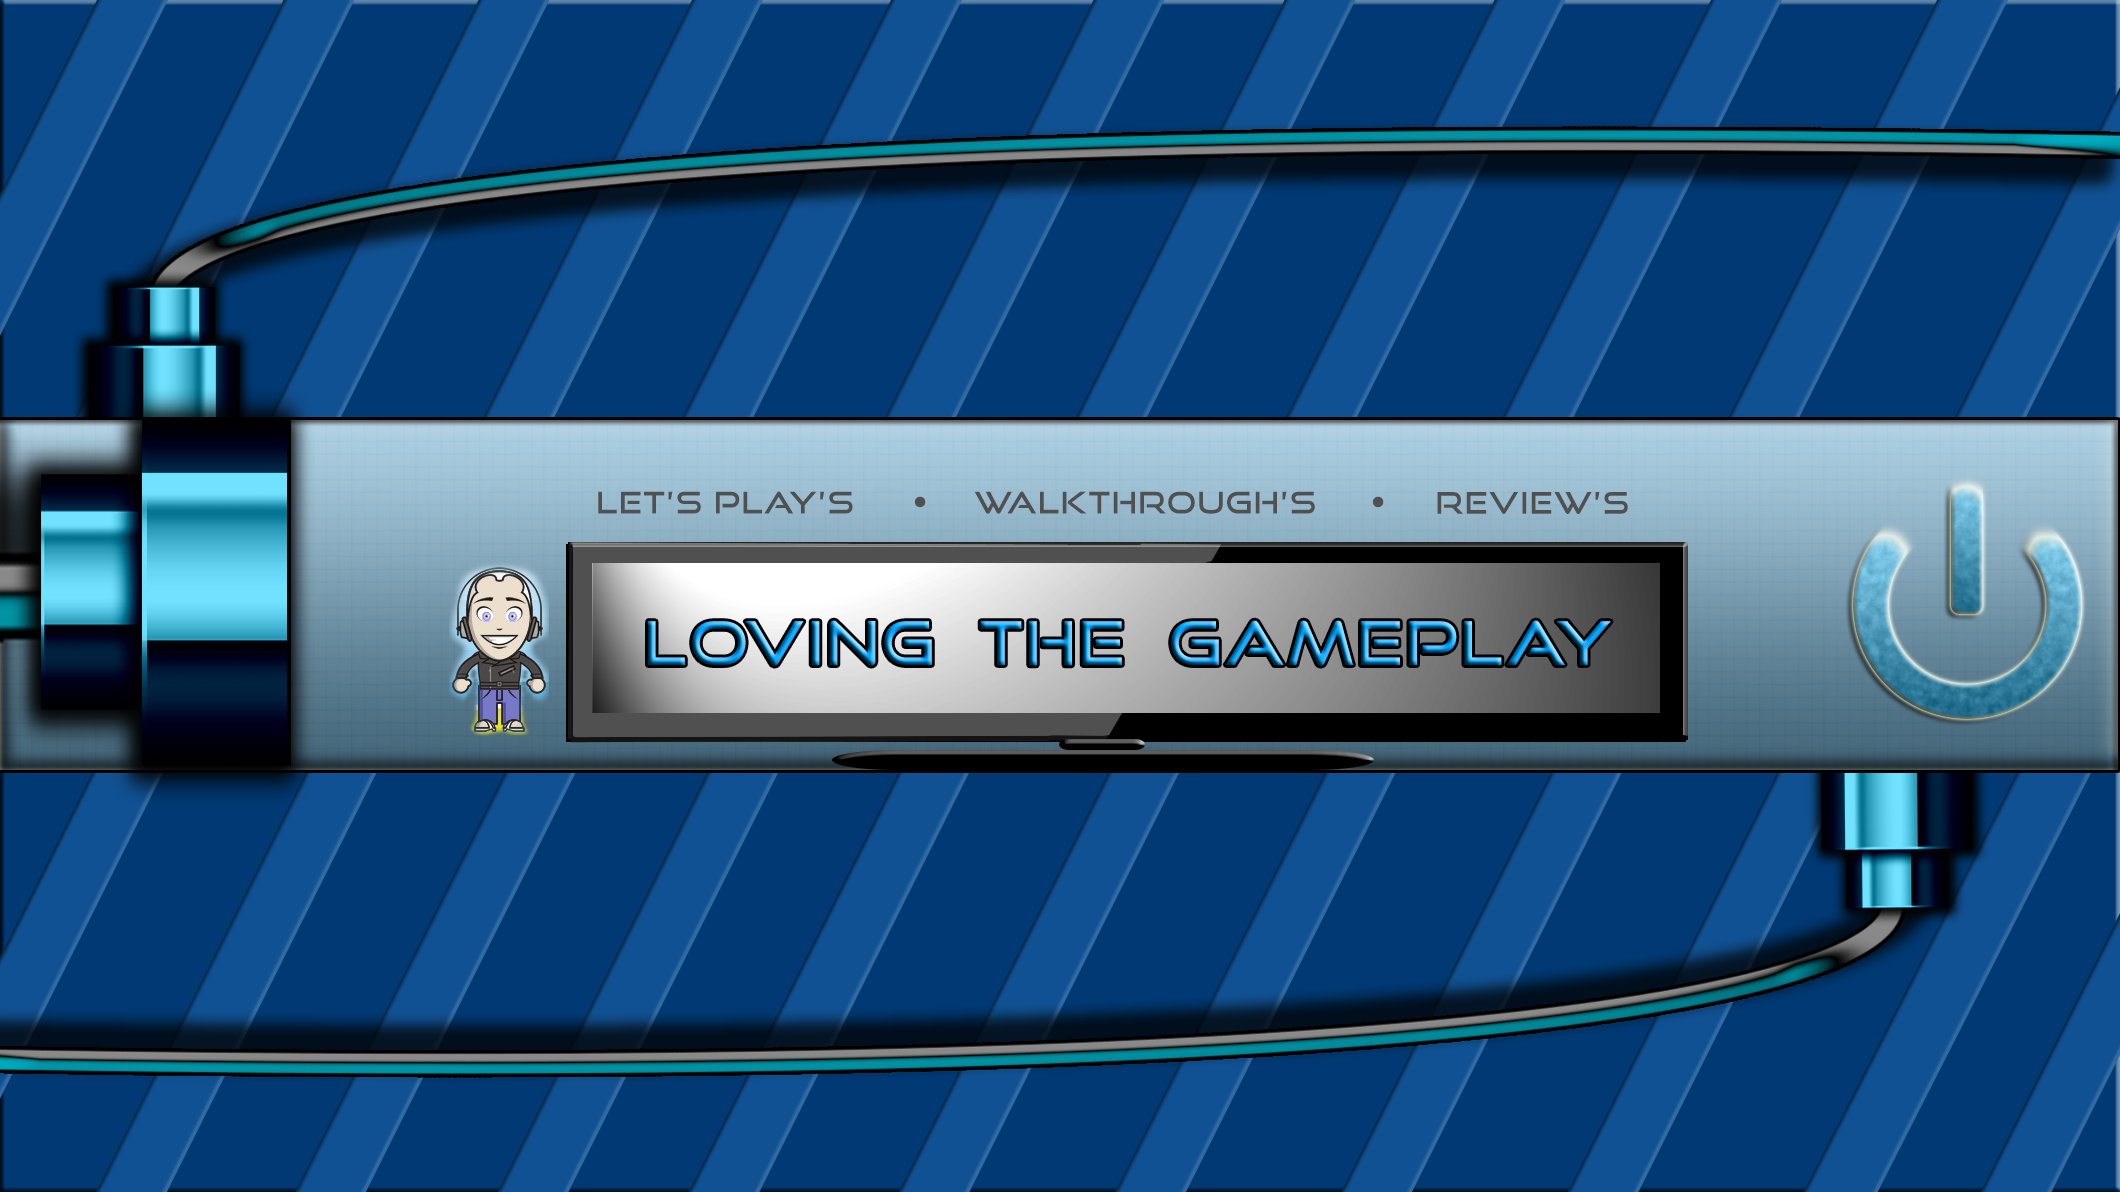 Awesome Youtube Channel Art 2120 X 1192 2013 youtube banner byYoutube Channel Art 2120 X 1192 Makeup